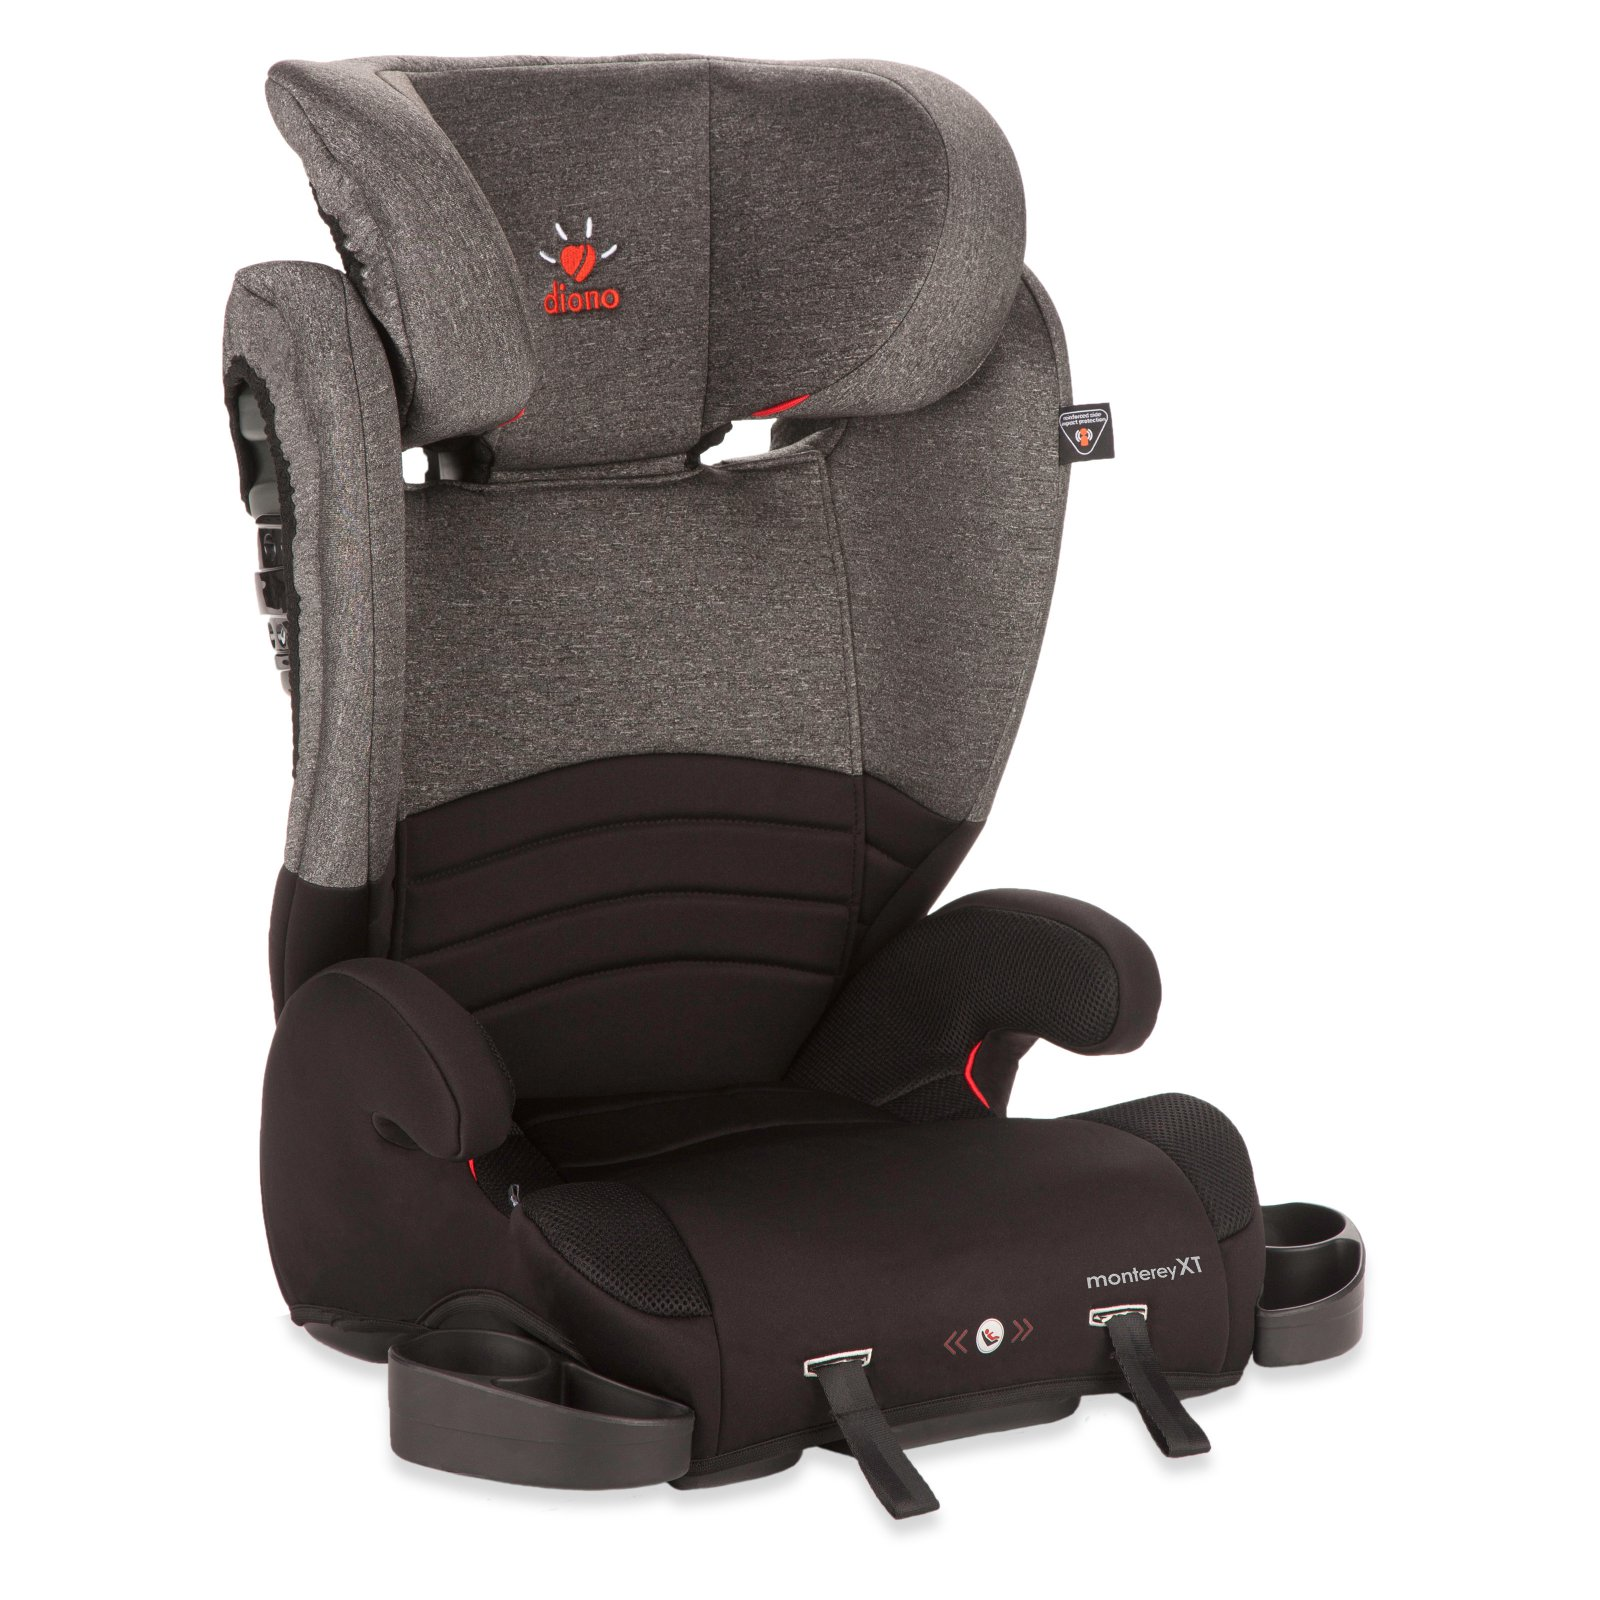 Diono Monterey XT High Back Car Booster Seat Heather by Diono